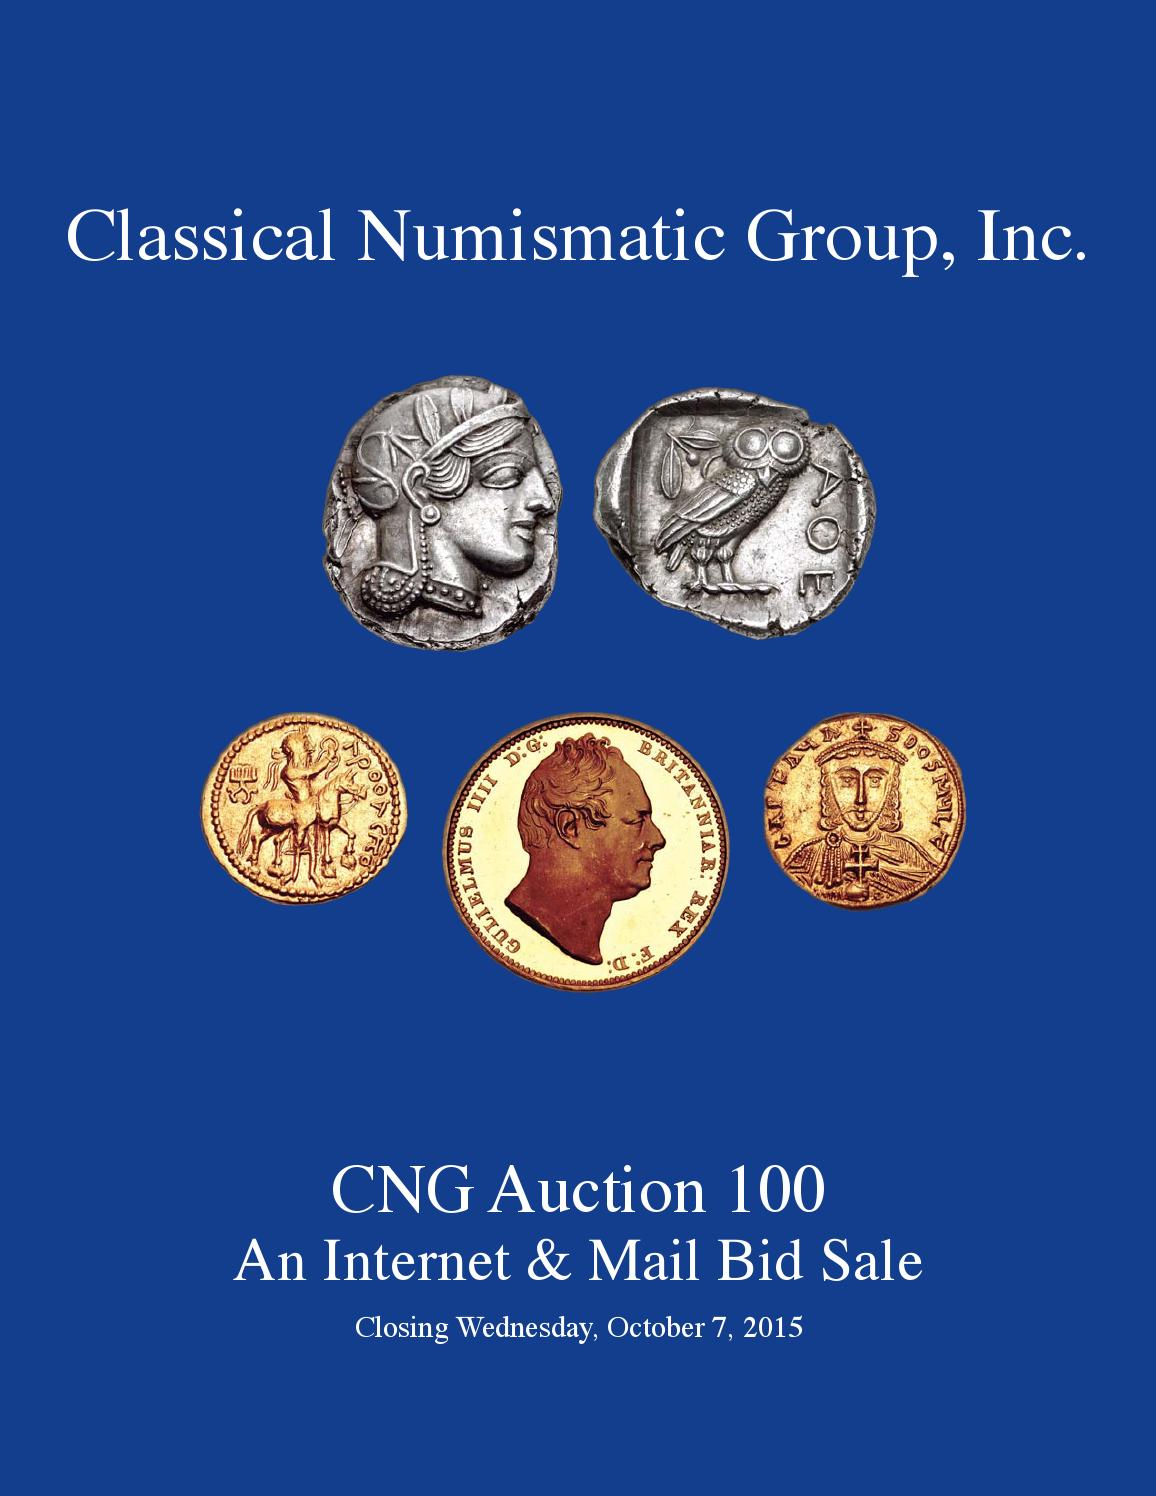 CNG MBS 100 Virtual Catalog By Classical Numismatic Group Inc Issuu